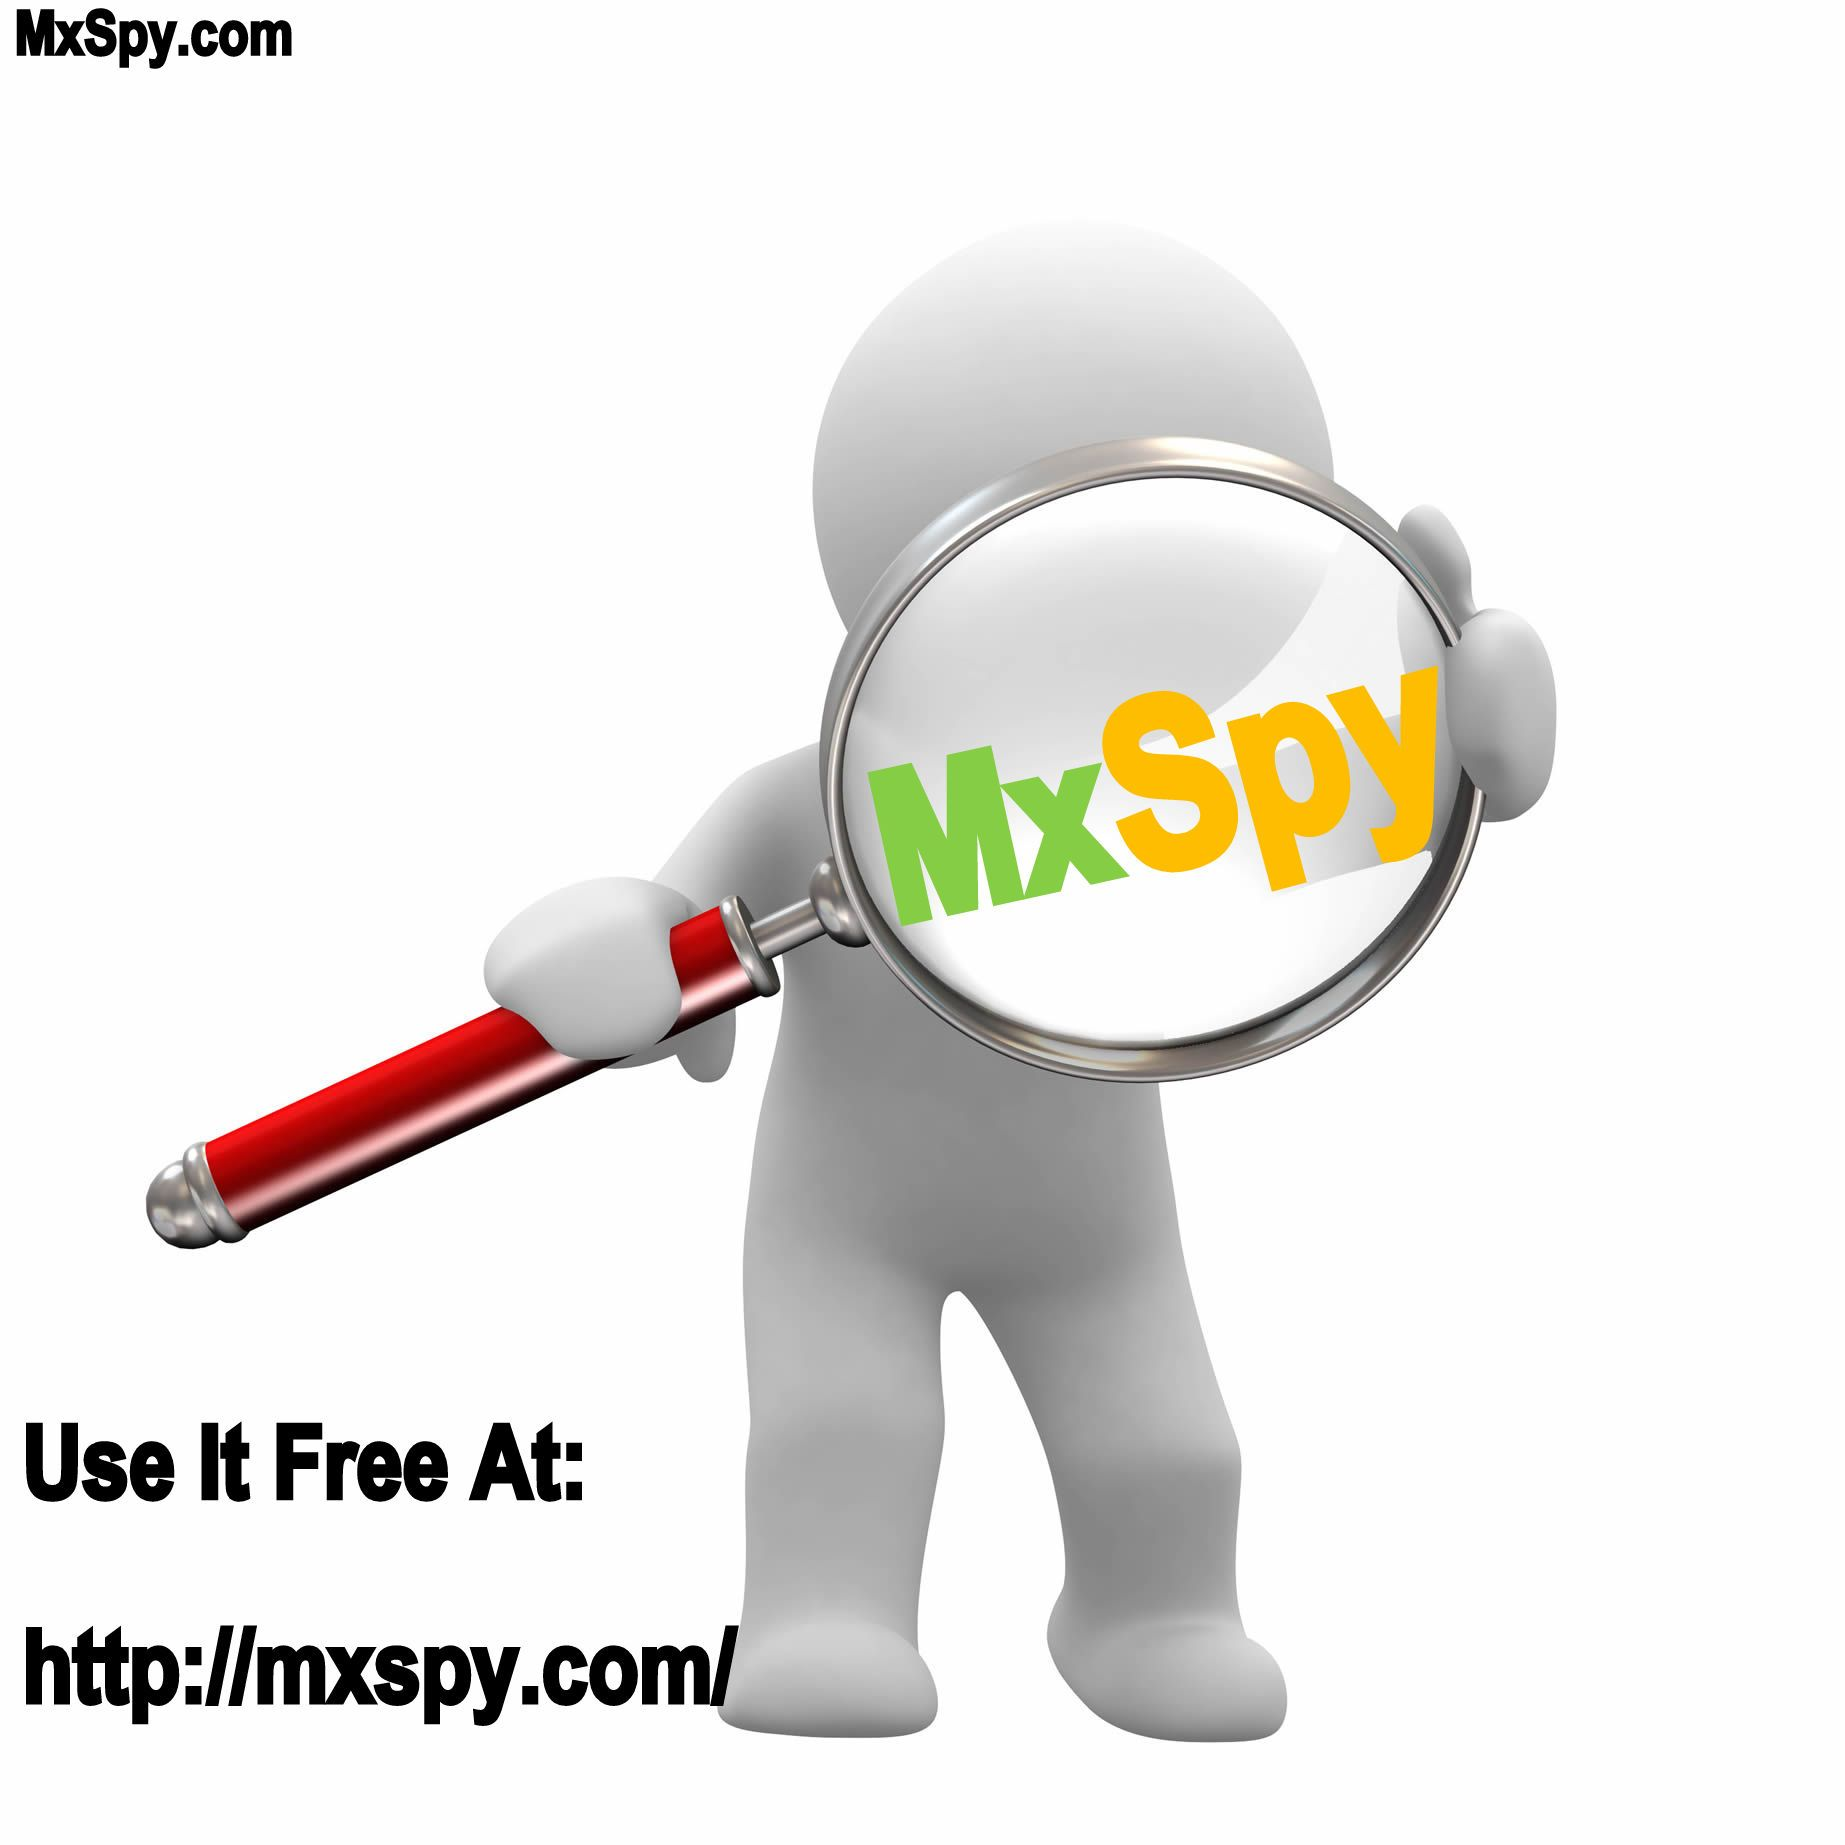 Mxspy is a great app that help you monitor the activity on